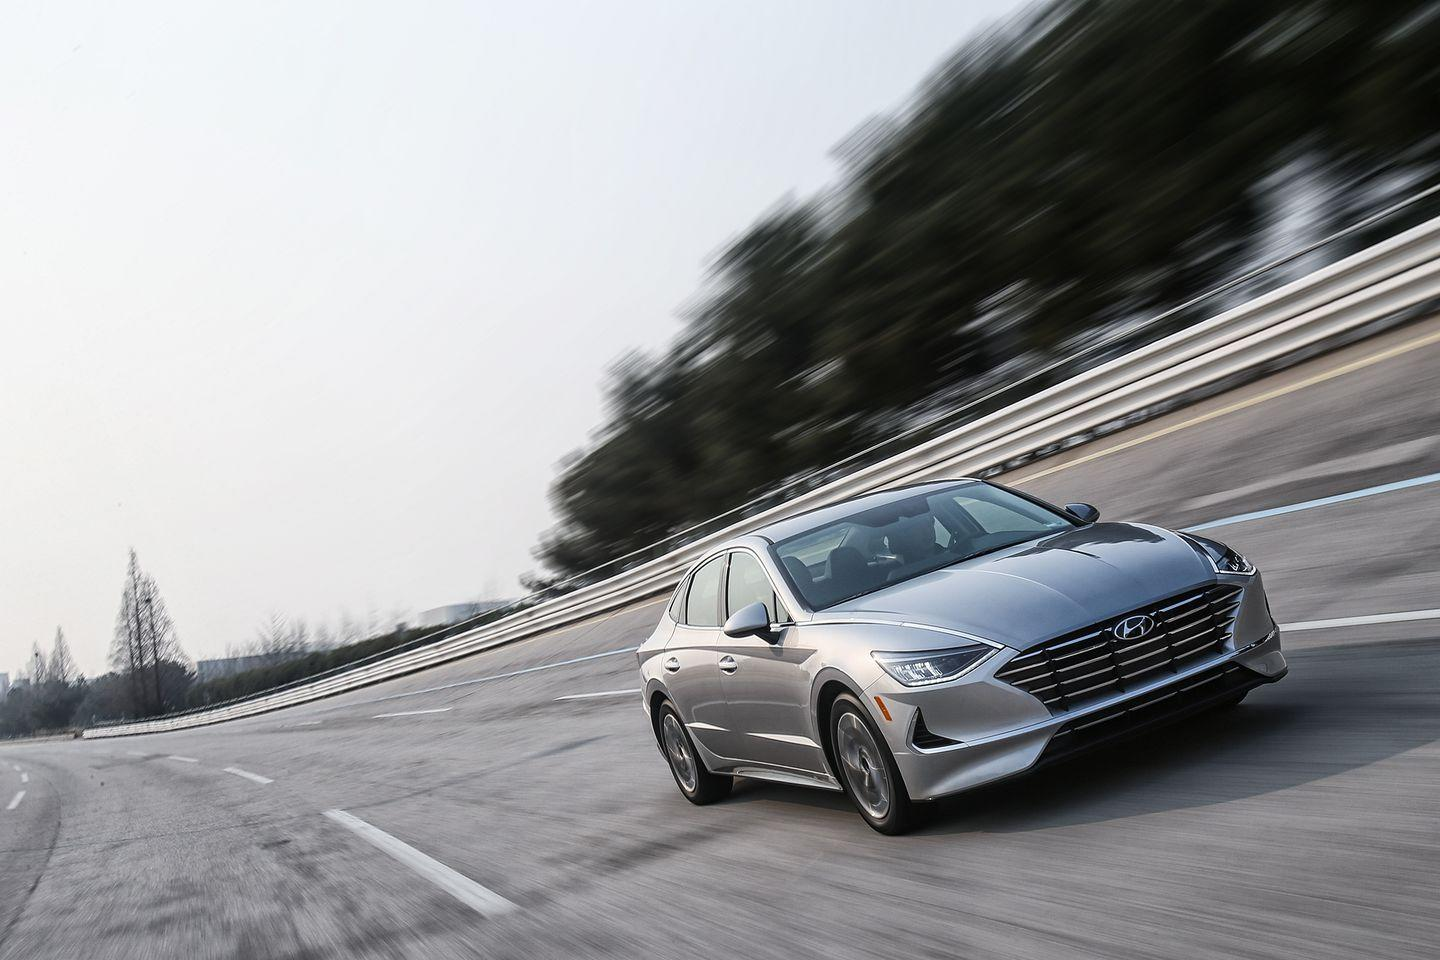 """<p>But we also appreciate the restraint on Hyundai's part for not just packing in more and more lines and surfaces, which is often how car companies endeavor to amp up design. The Sonata is the first car rendered in Hyundai's latest design language-dubbed Sensuous Sportiness-previewed by <a href=""""https://www.caranddriver.com/news/a19135395/hyundai-le-fil-rouge-hdc-1-concept-sensuous-sportiness/"""" rel=""""nofollow noopener"""" target=""""_blank"""" data-ylk=""""slk:the Le Fil Rouge concept car"""" class=""""link rapid-noclick-resp"""">the Le Fil Rouge concept car</a> shown at the 2018 Geneva auto show. And it's the first model fully conceived since the arrival of its superstar designers-chief design officer Luc Donckerwolke (formerly of Lamborghini, Audi, and Bentley) and head of Hyundai design SangYup Lee (General Motors, Bentley, and Volkswagen).</p>"""